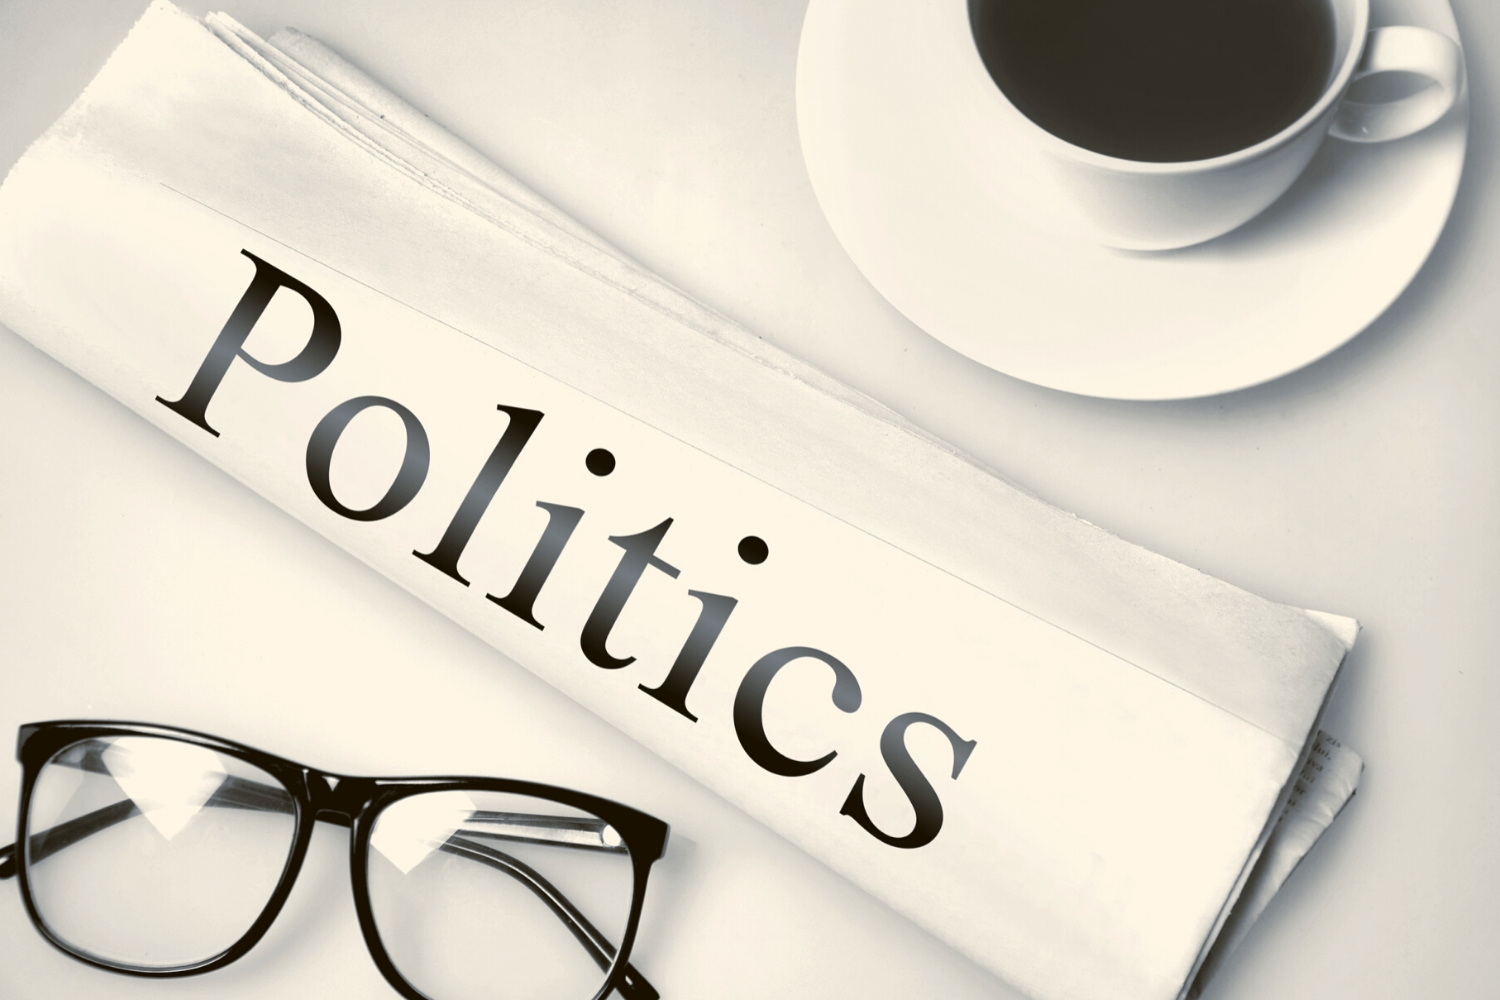 What Is the Main Purpose of a Political Party